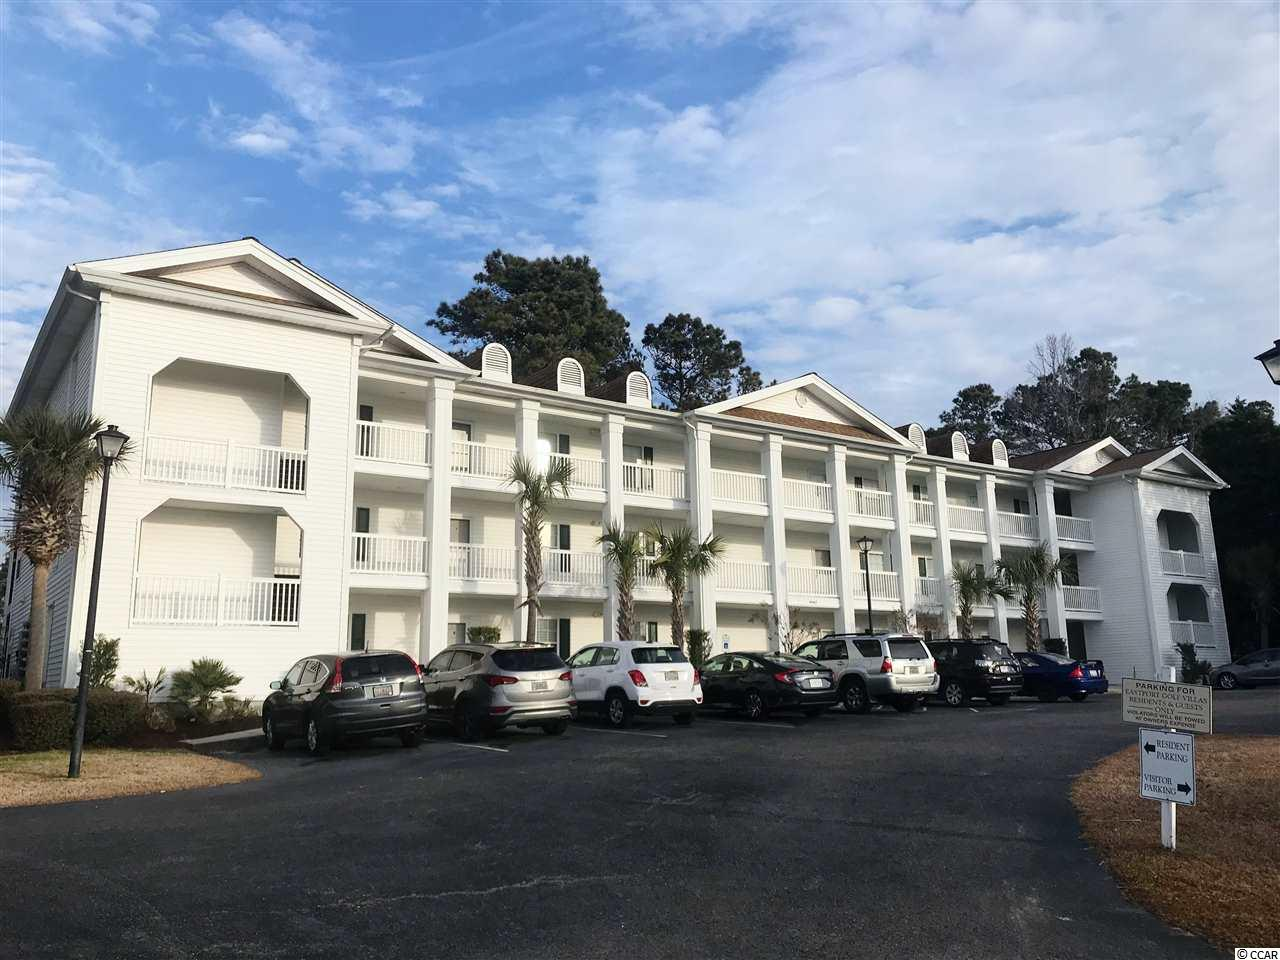 This beautiful FULLY FURNISHED condo is located in the well known Eastport Golf community. It is in the heart of Little River, SC and has easy access to all the shops, restaurants, entertainment, and golf Little River AND North Myrtle Beach, SC has to offer. Great second home or investment property income. Seller has never rented out the property. Nice relaxing view of pond and golf course from the screened porch. Well maintained building with short walk to community pool. This is the only unit on market in Eastport Villas. Buyer is responsible for all measurement verification's.